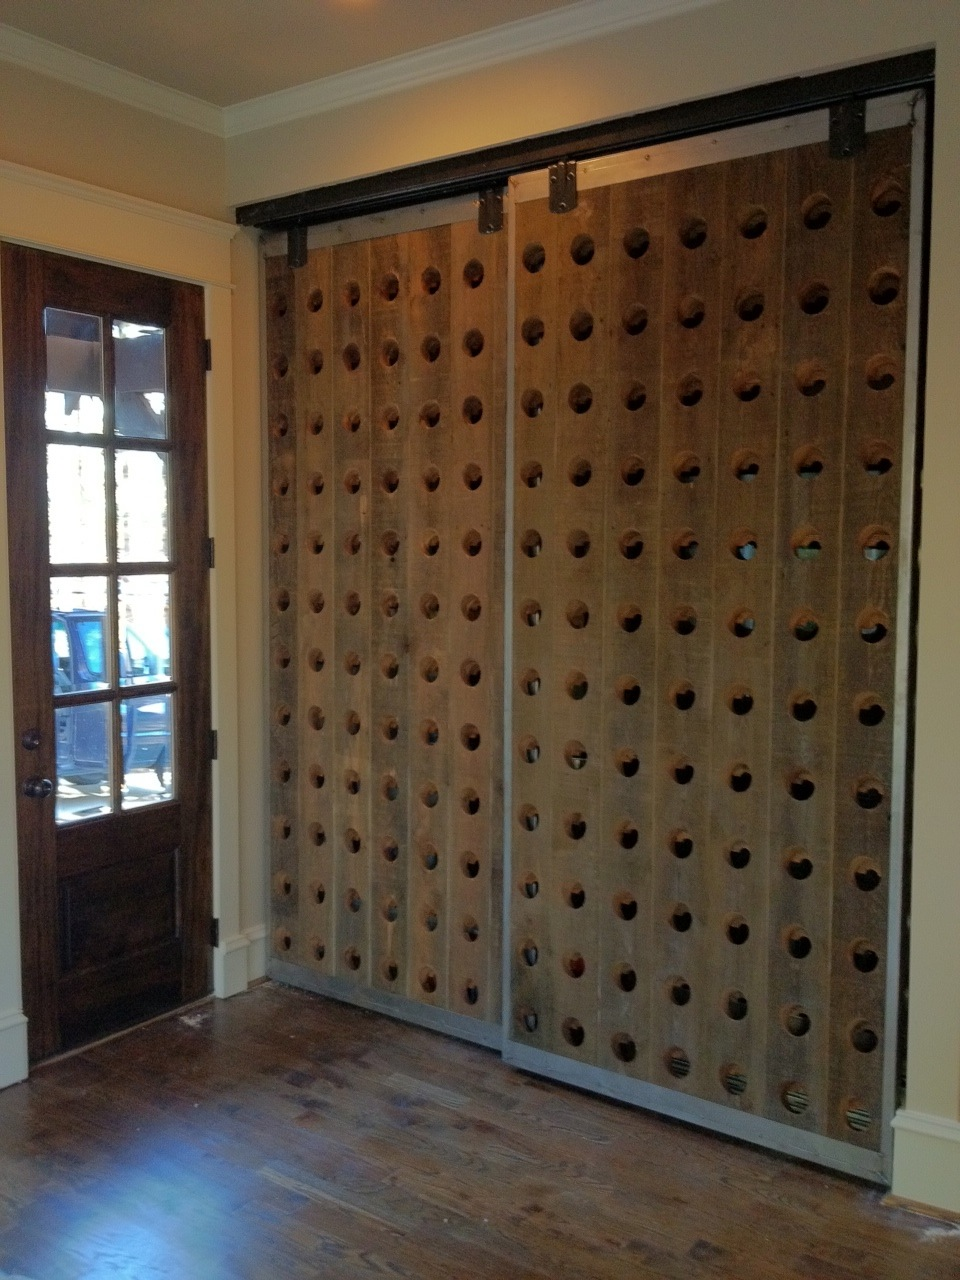 Riddling Wine Rack Door - If you can dream it up, we will make it for you